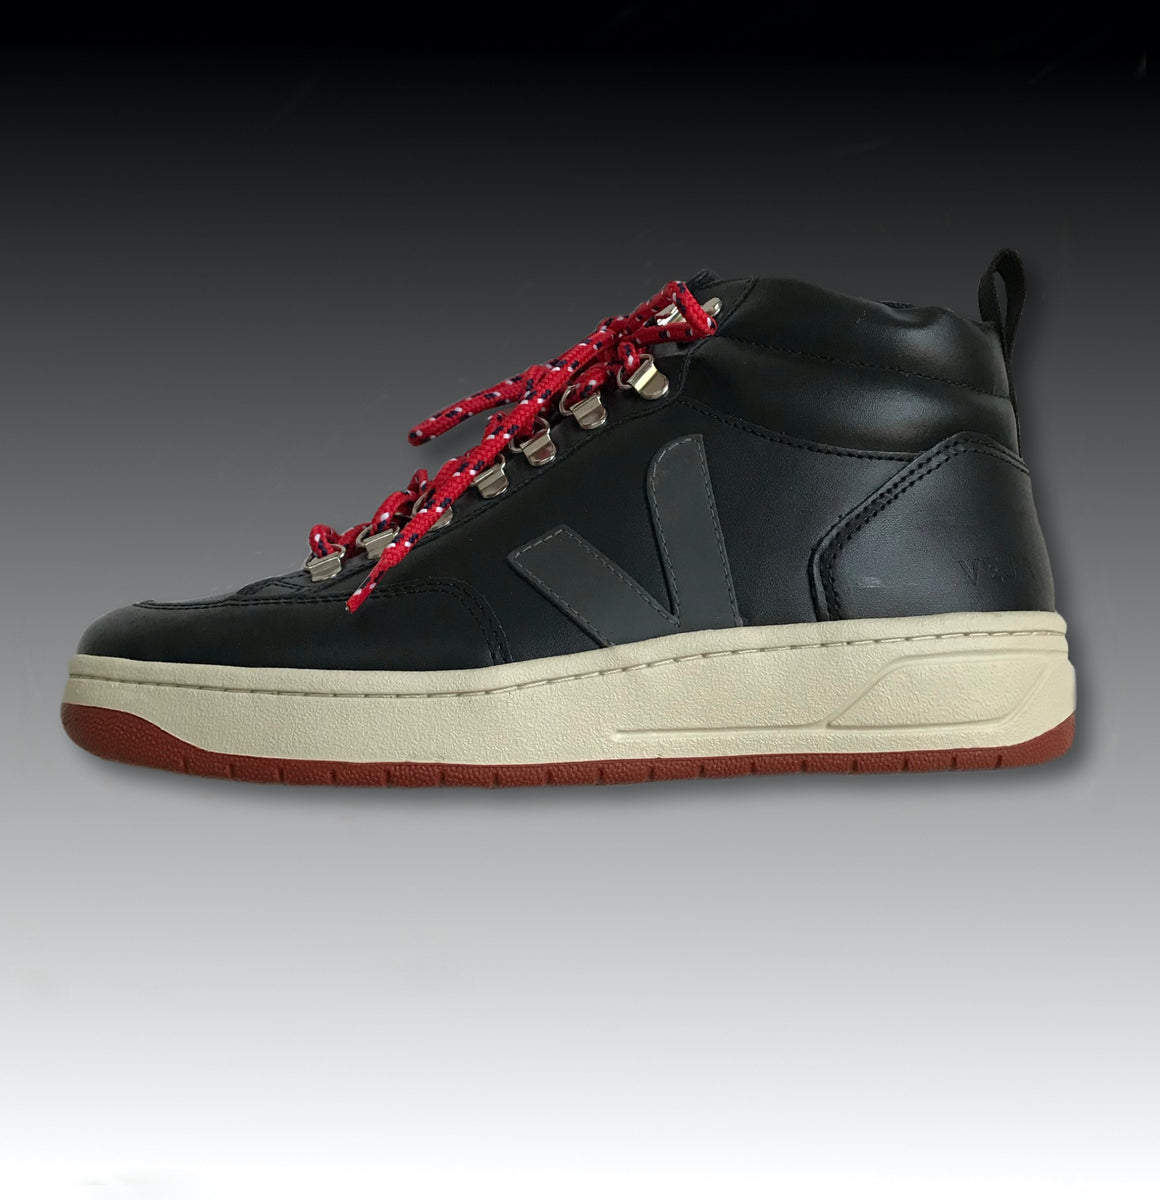 RORAIMA BASTILLE LEATHER BLACK GRAFITE RUST OUTSOLE